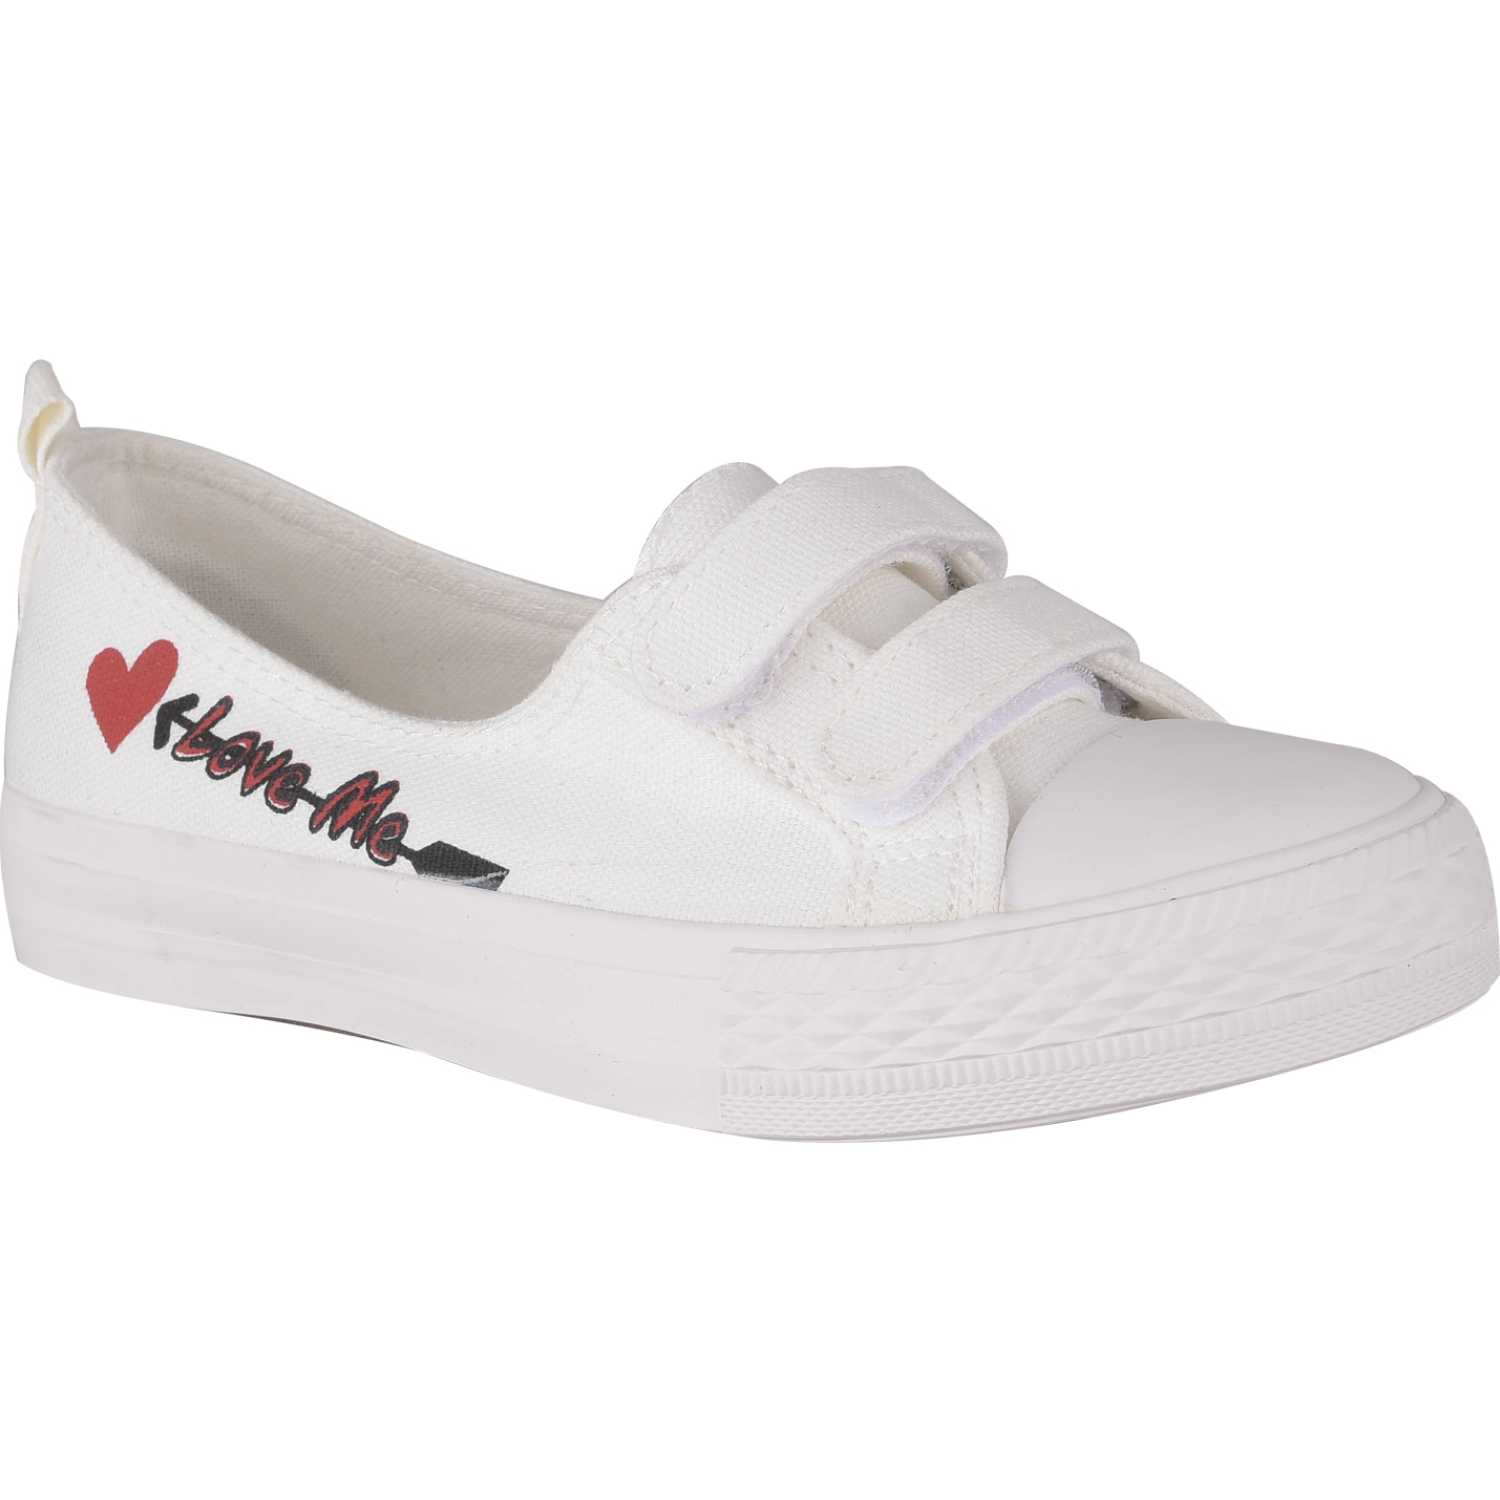 Platanitos zce 2005 Blanco Zapatillas Fashion